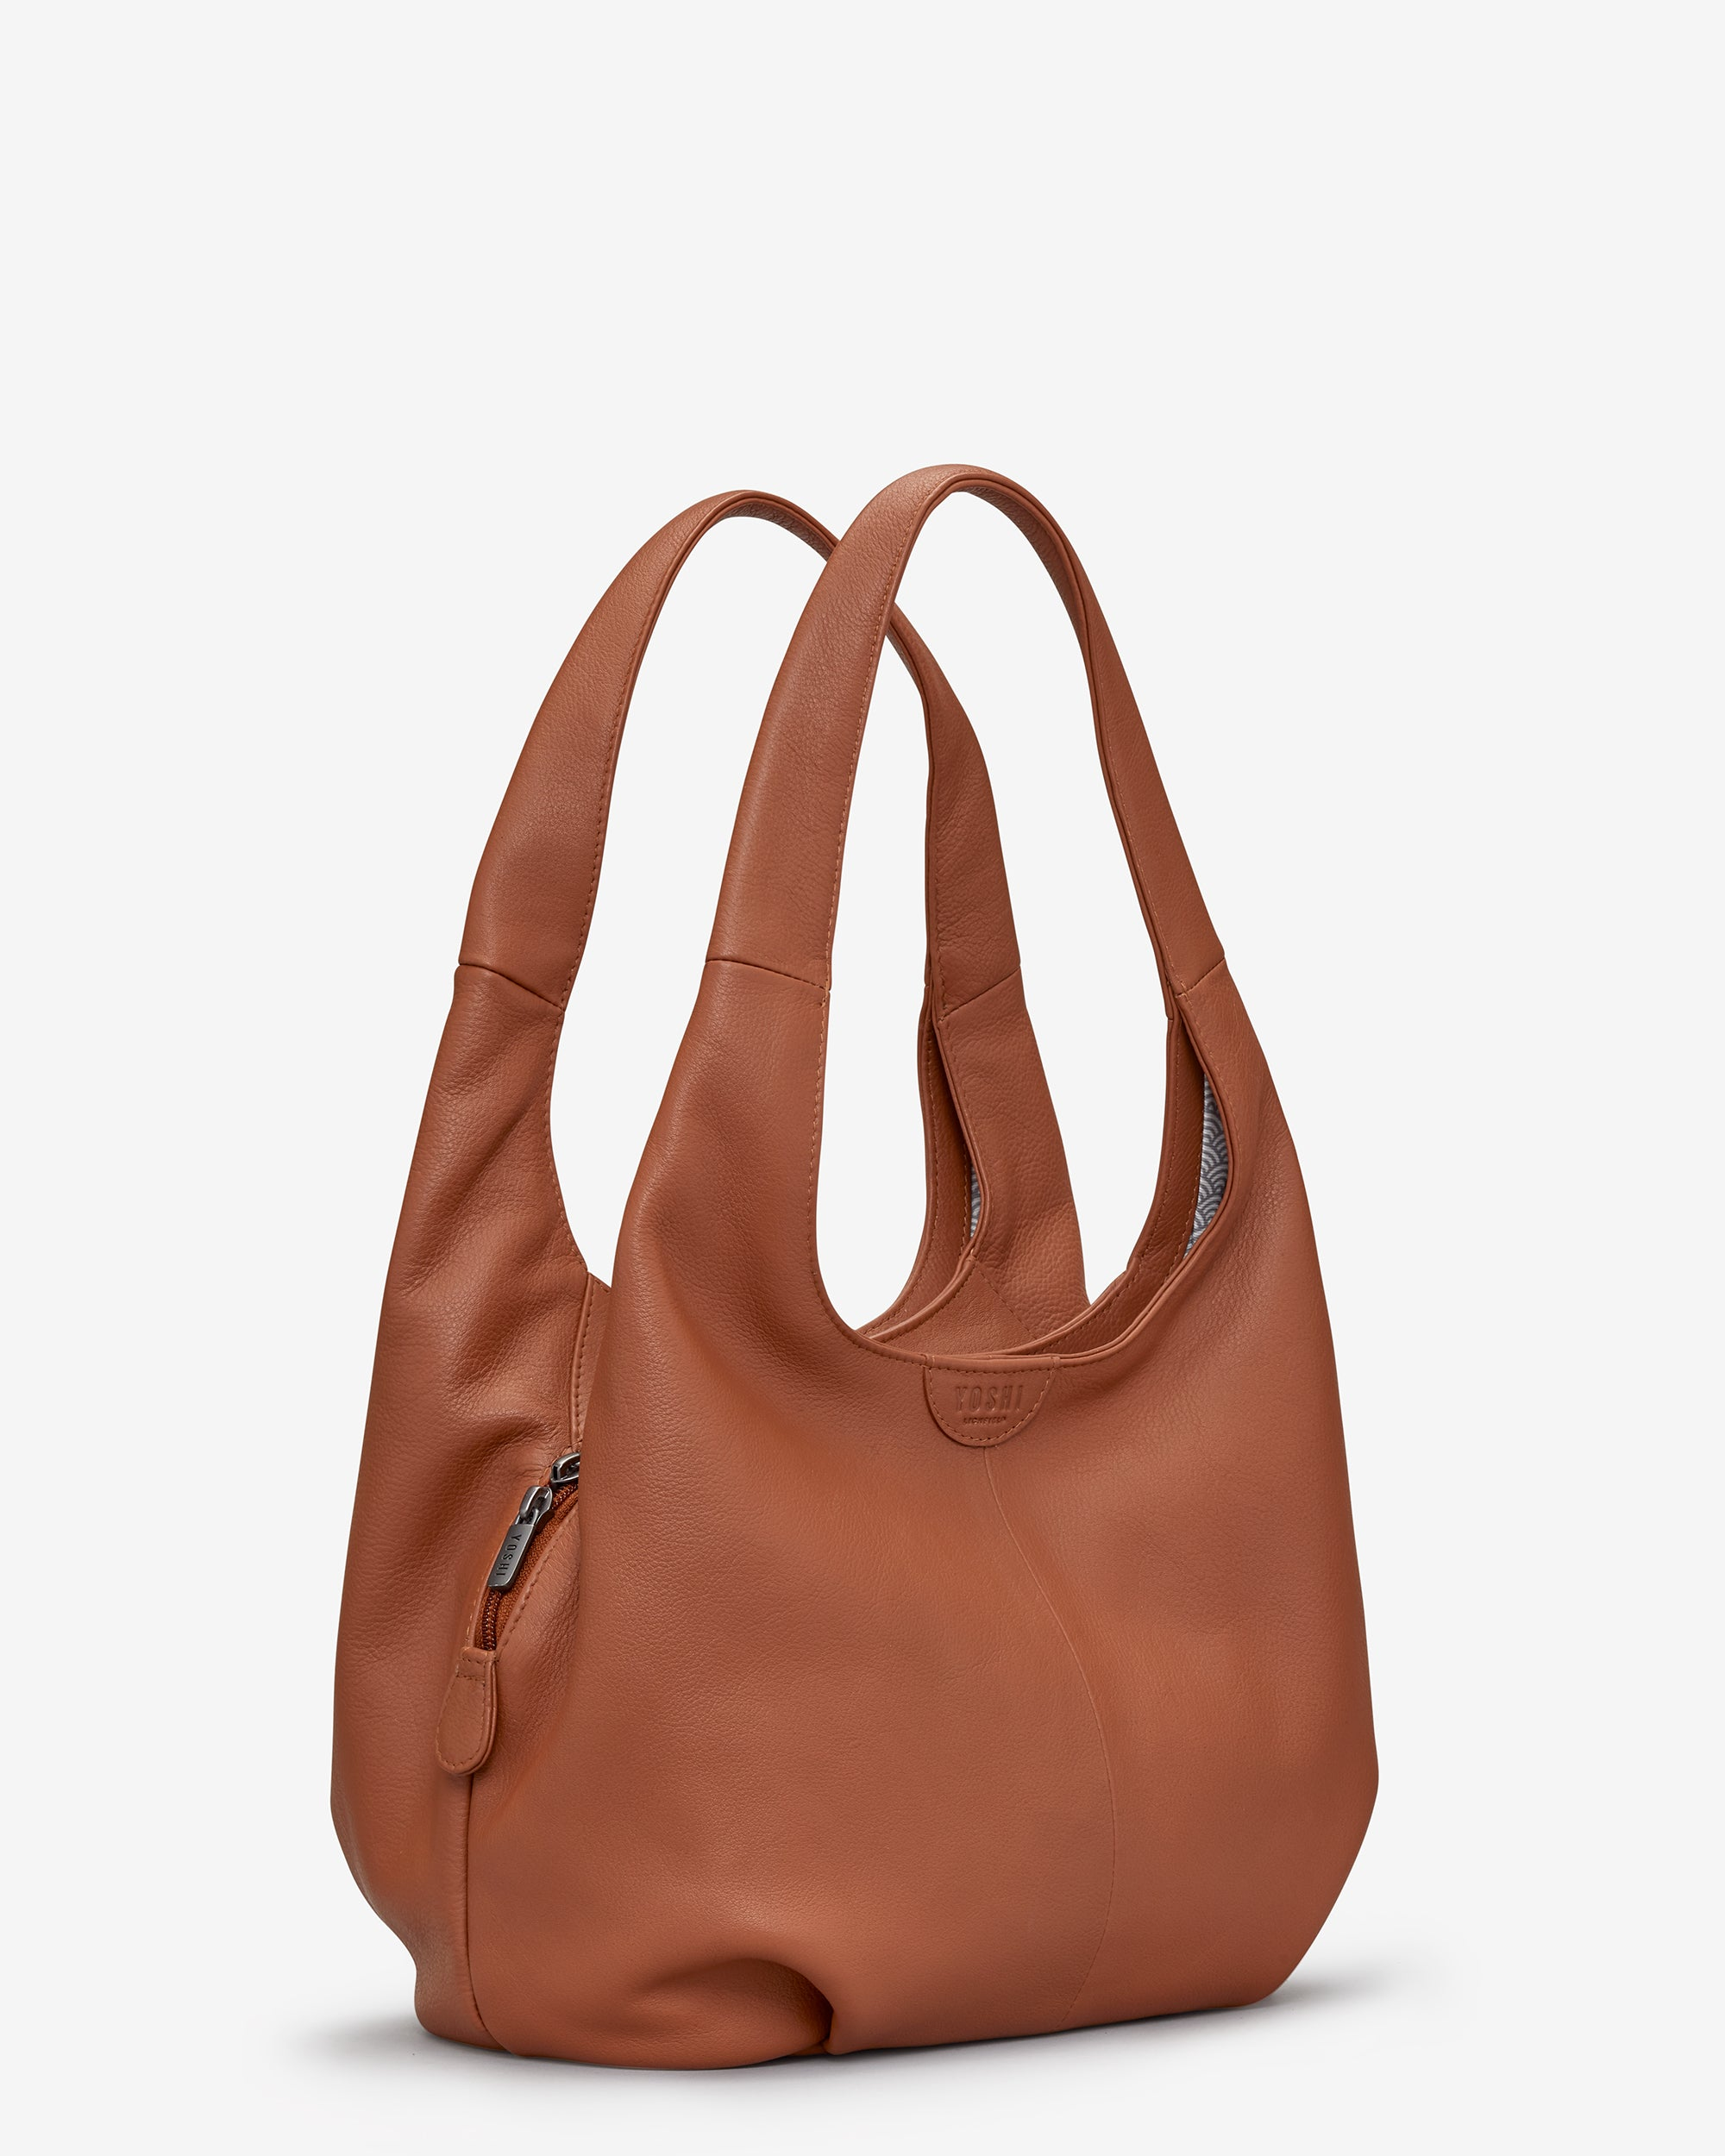 Meehan Tan Leather Slouch Shoulder Bag - - Yoshi. Yoshi   Shoulder Bag e770812768